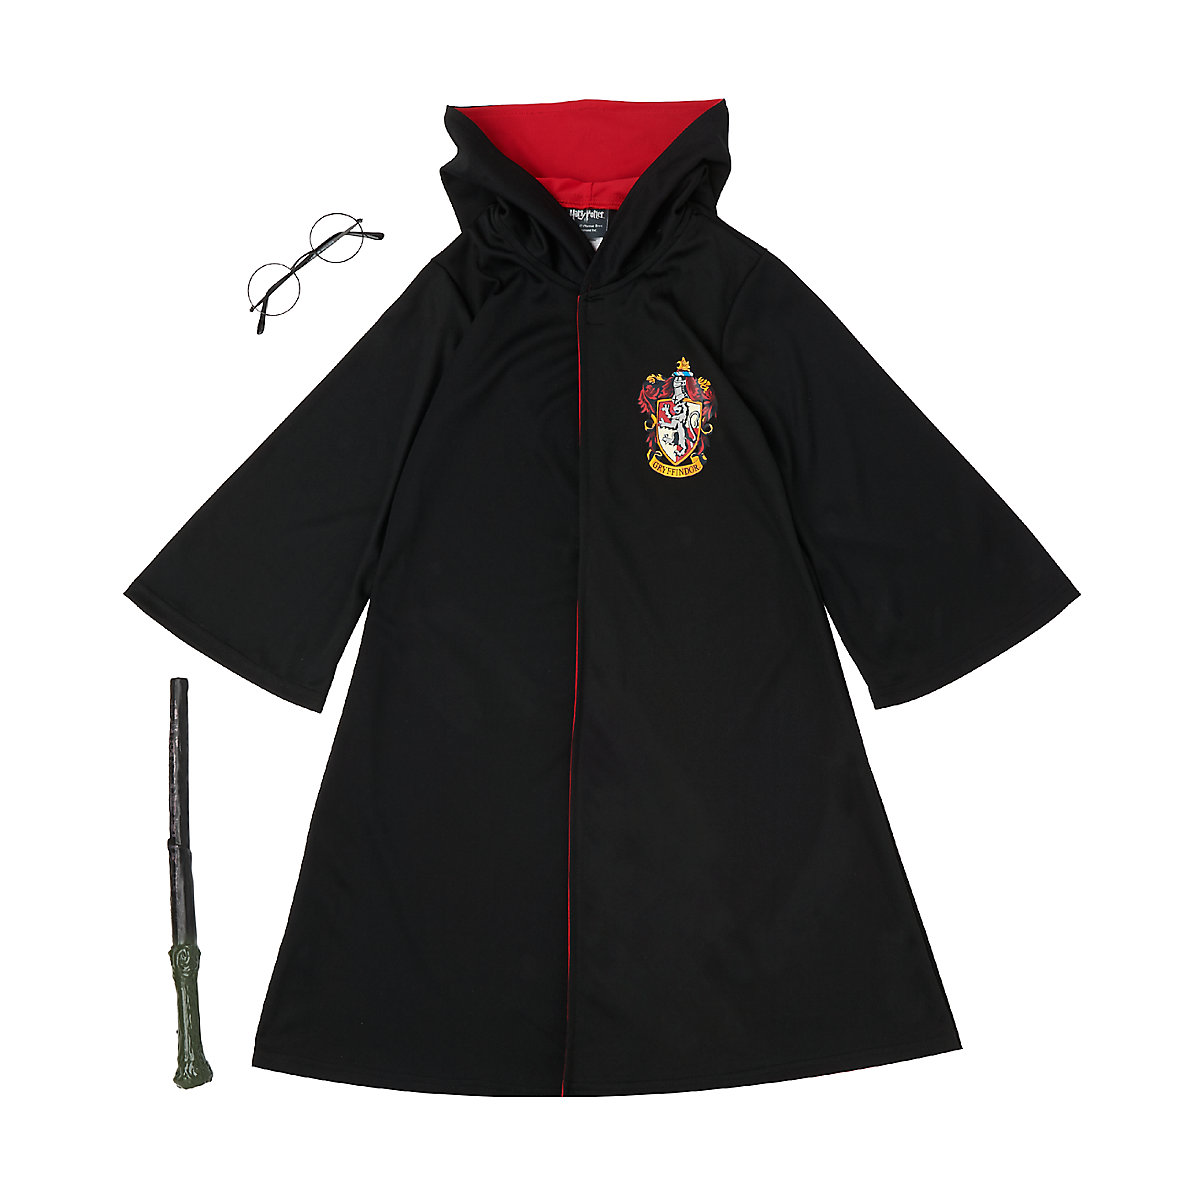 New ELC Boys and Girls Harry Potter Dress Up 5-6 Years Toy From 5 years - Harry Potter Gifts